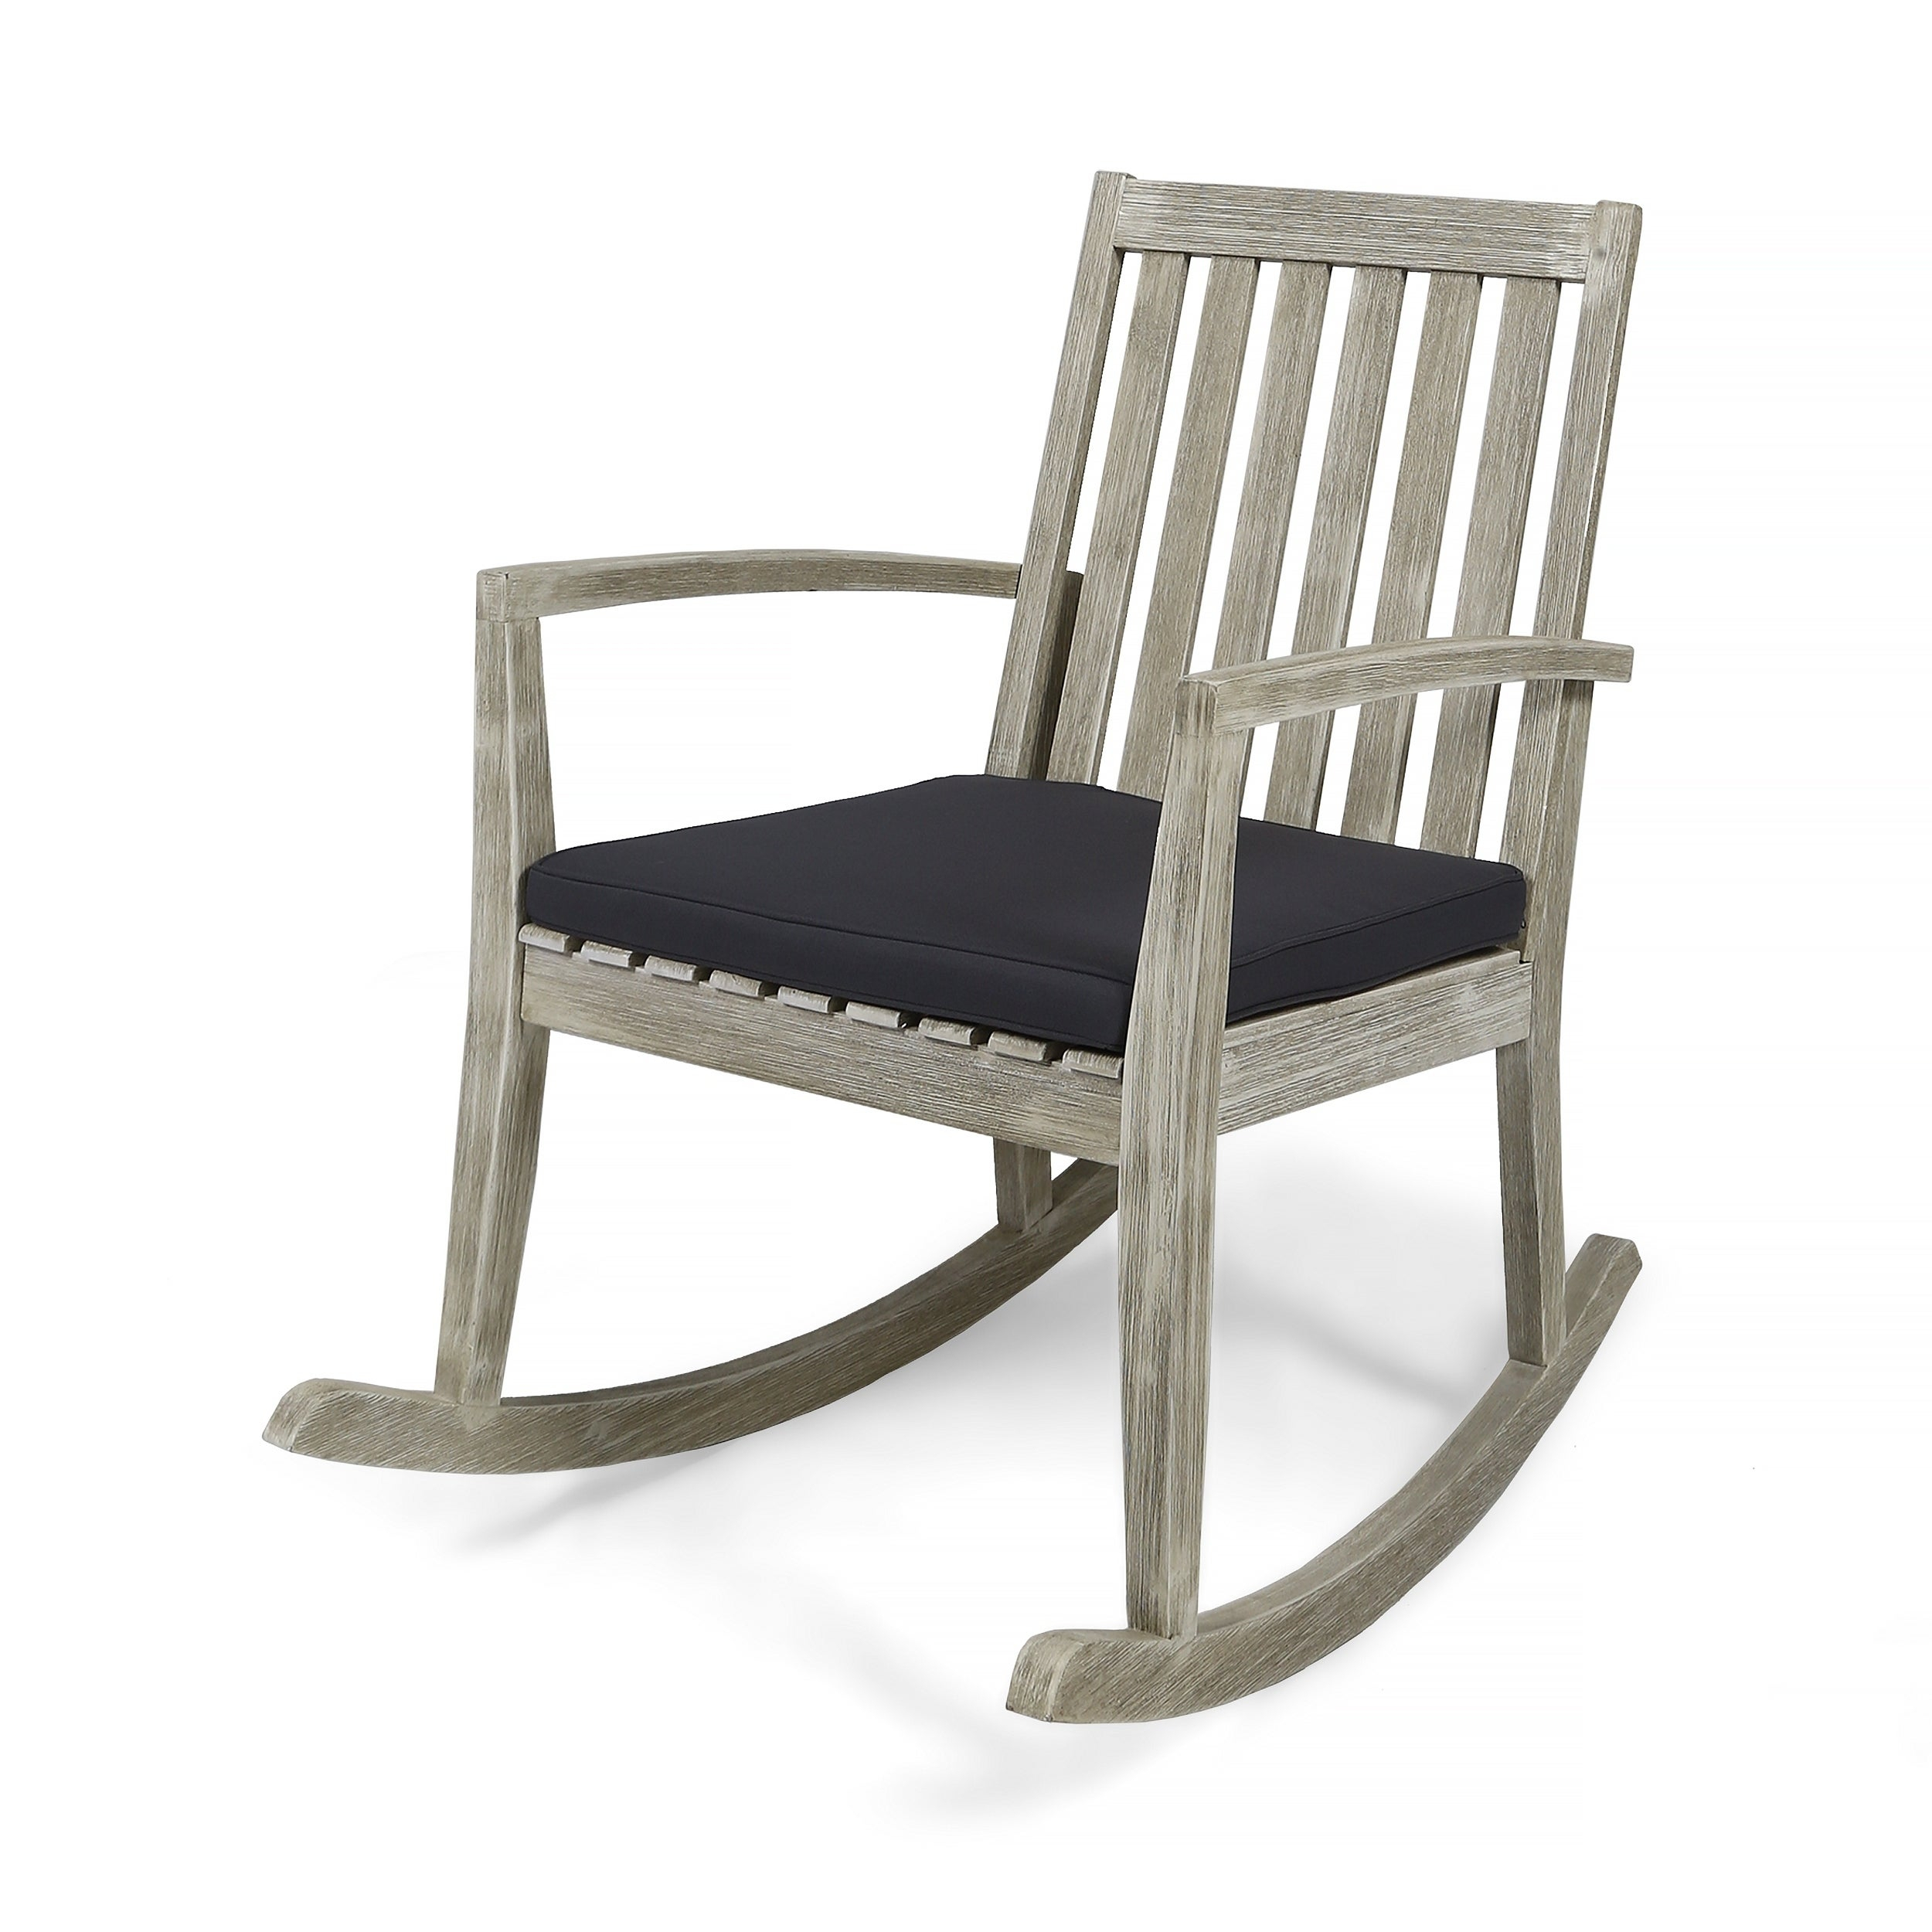 Buy Rocking Chairs, Traditional Living Room Chairs Online At Pertaining To Radford Traditional Rocking Chairs (#6 of 20)